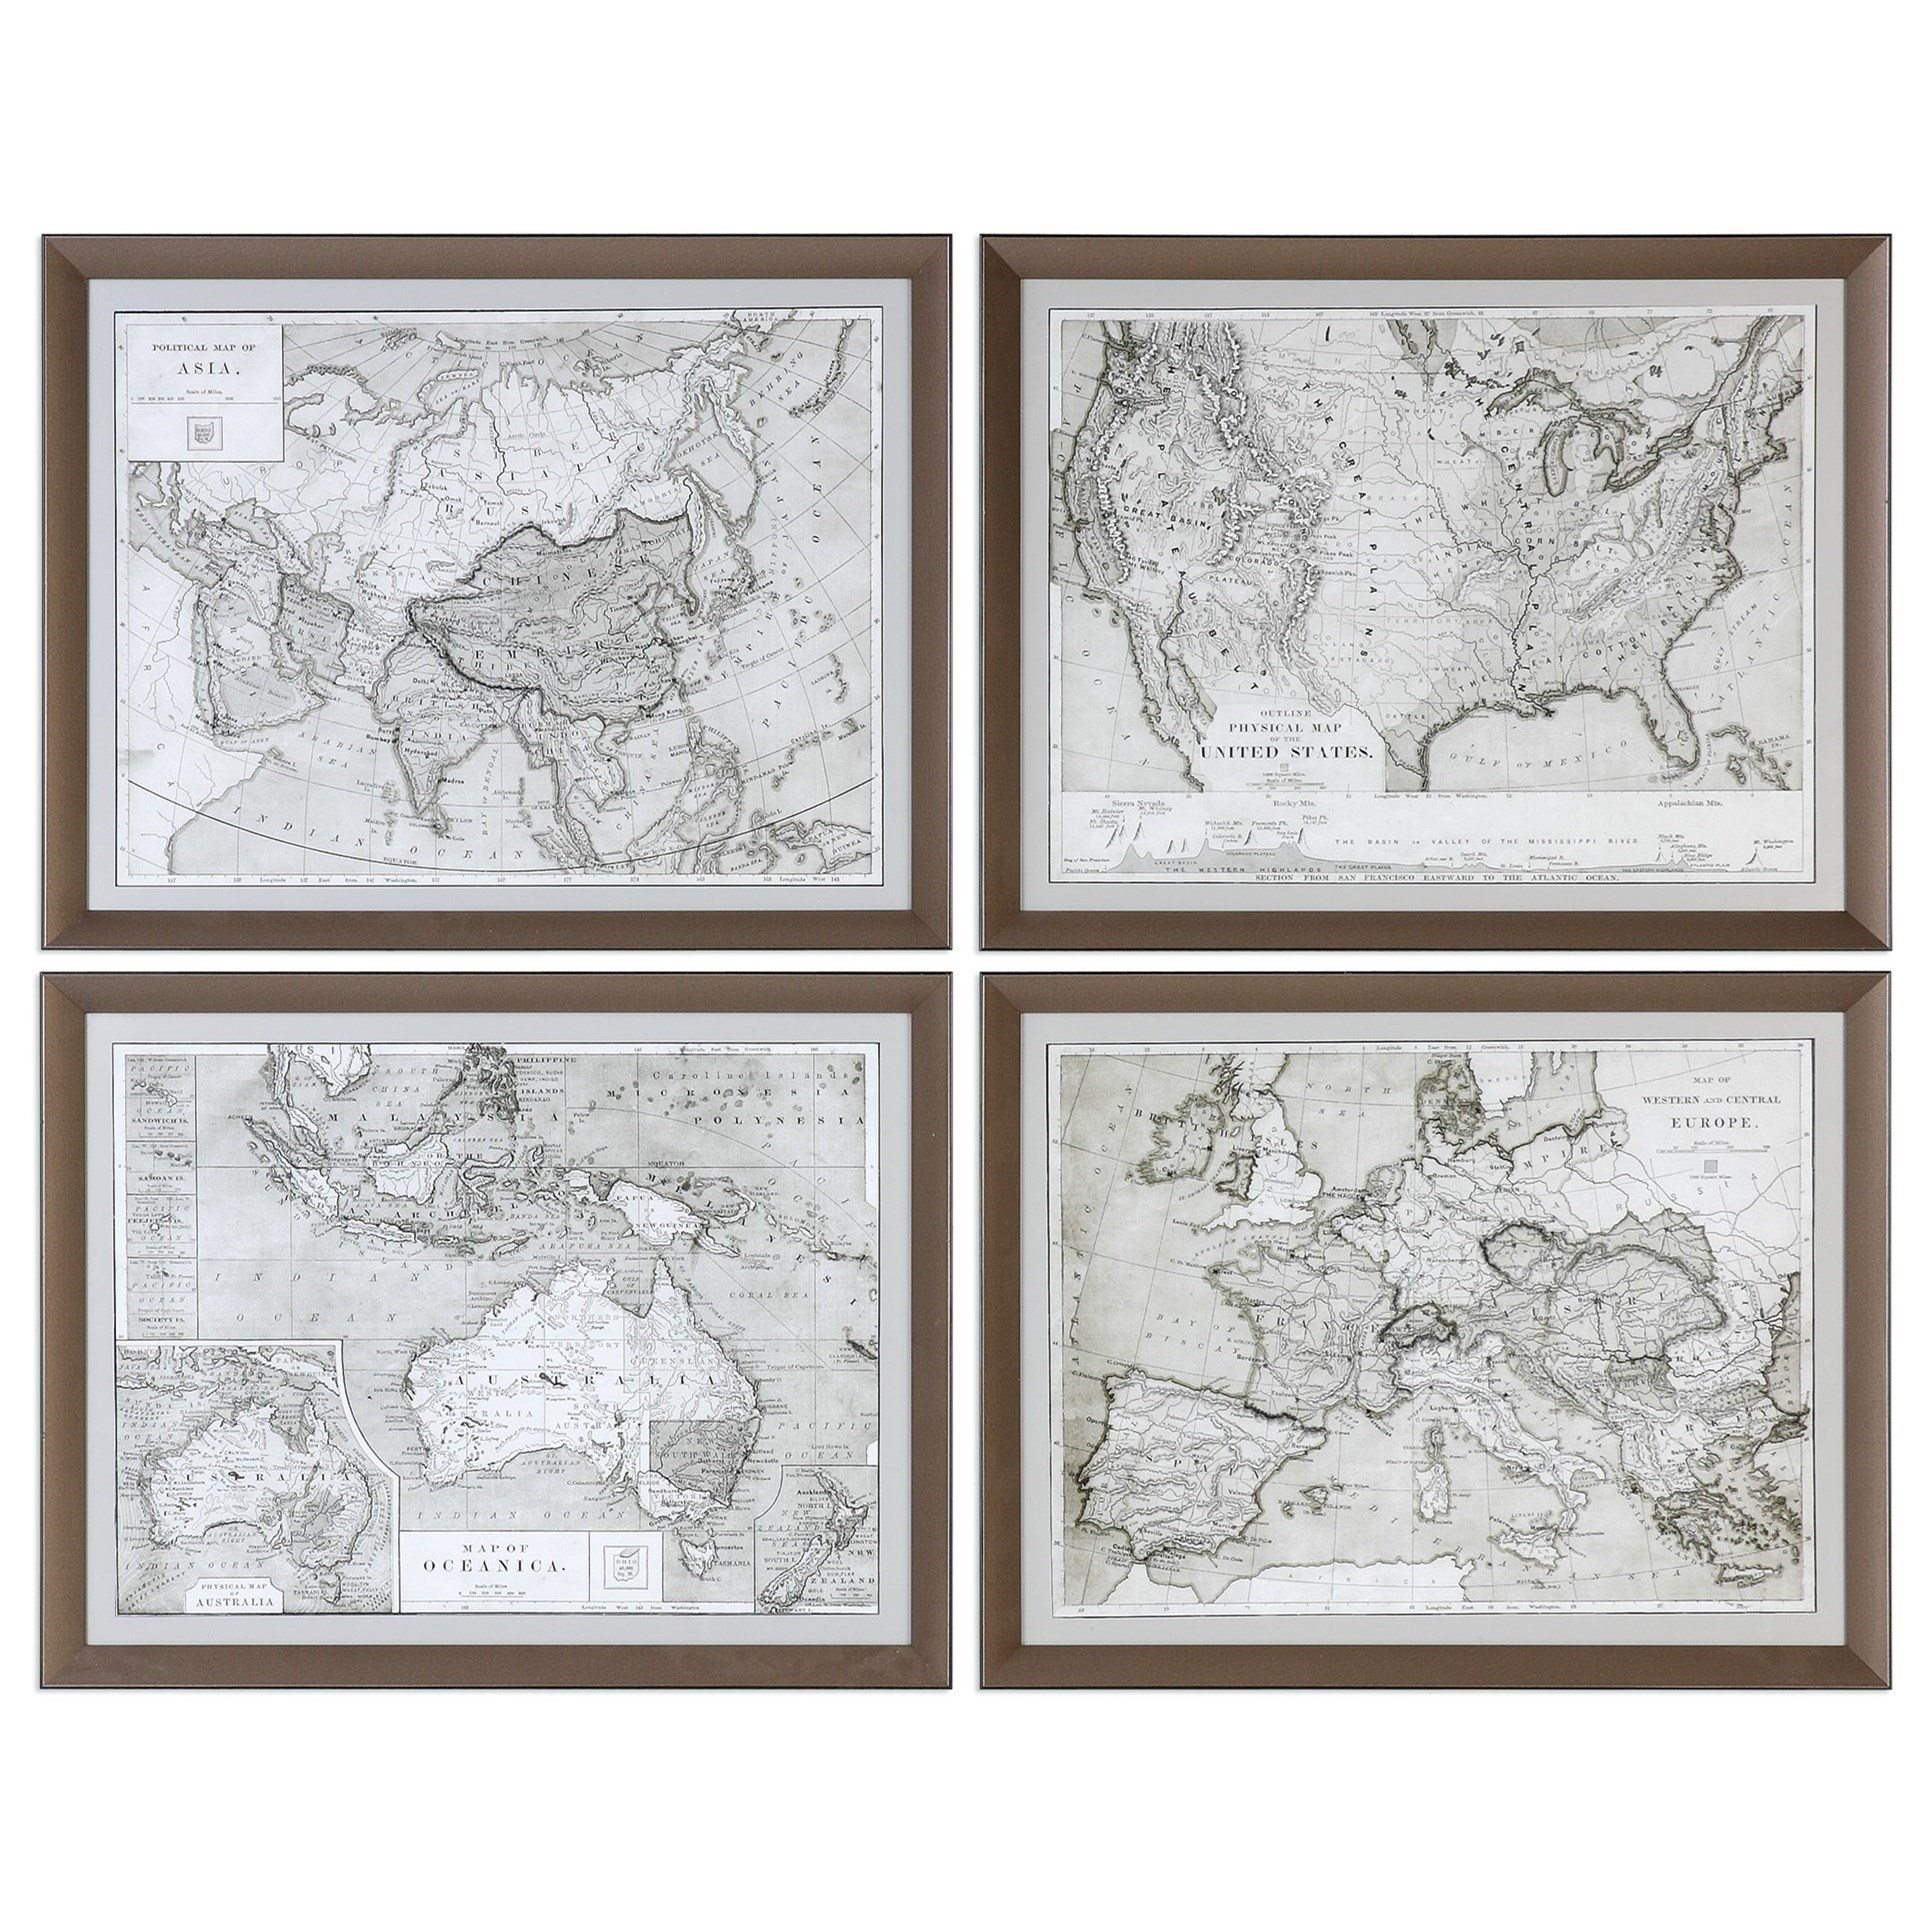 Uttermost Art World Maps (Set of 4) - Item Number: 33639